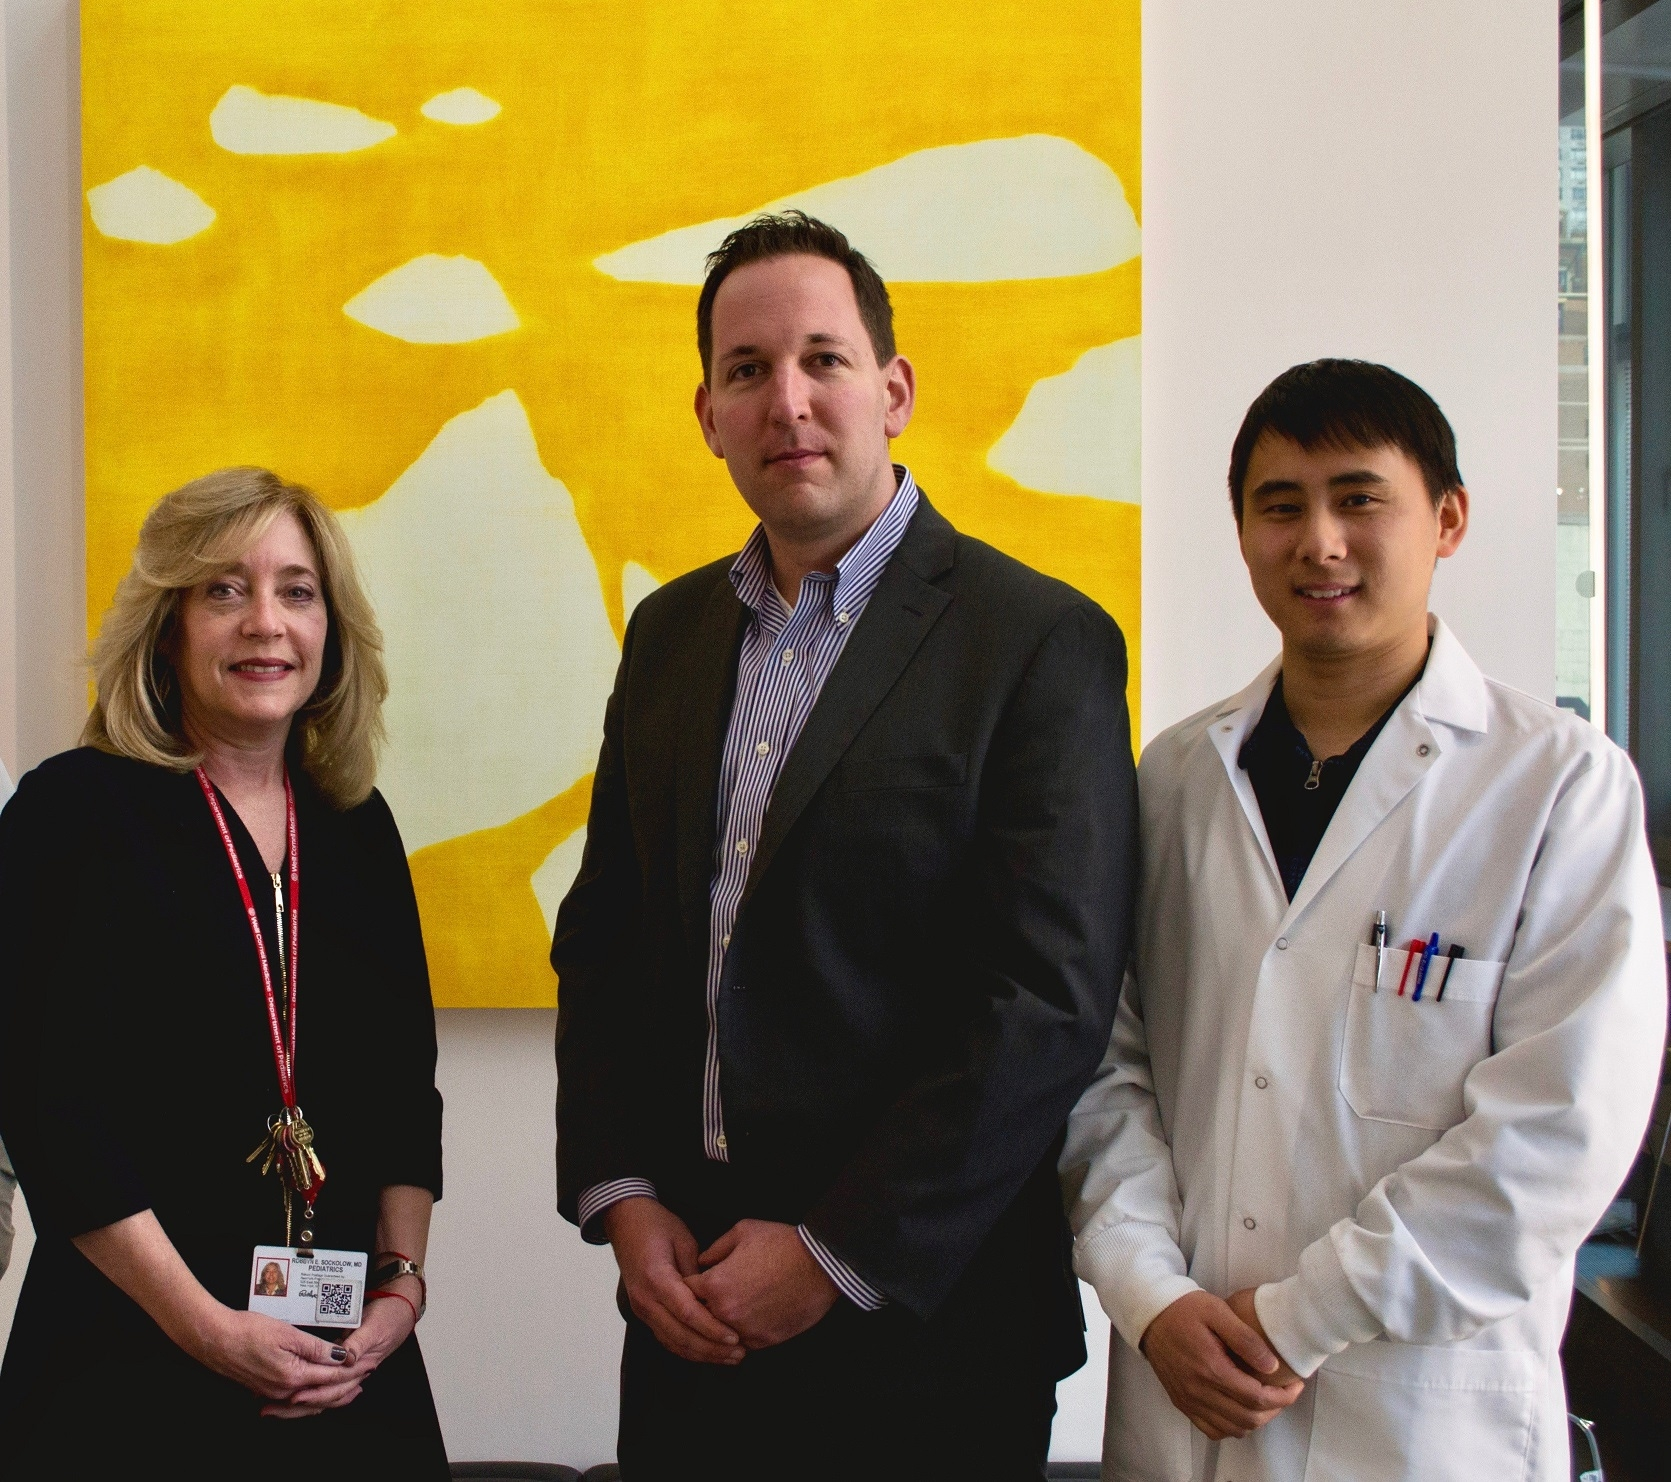 Researchers at Weill Cornell Medicine